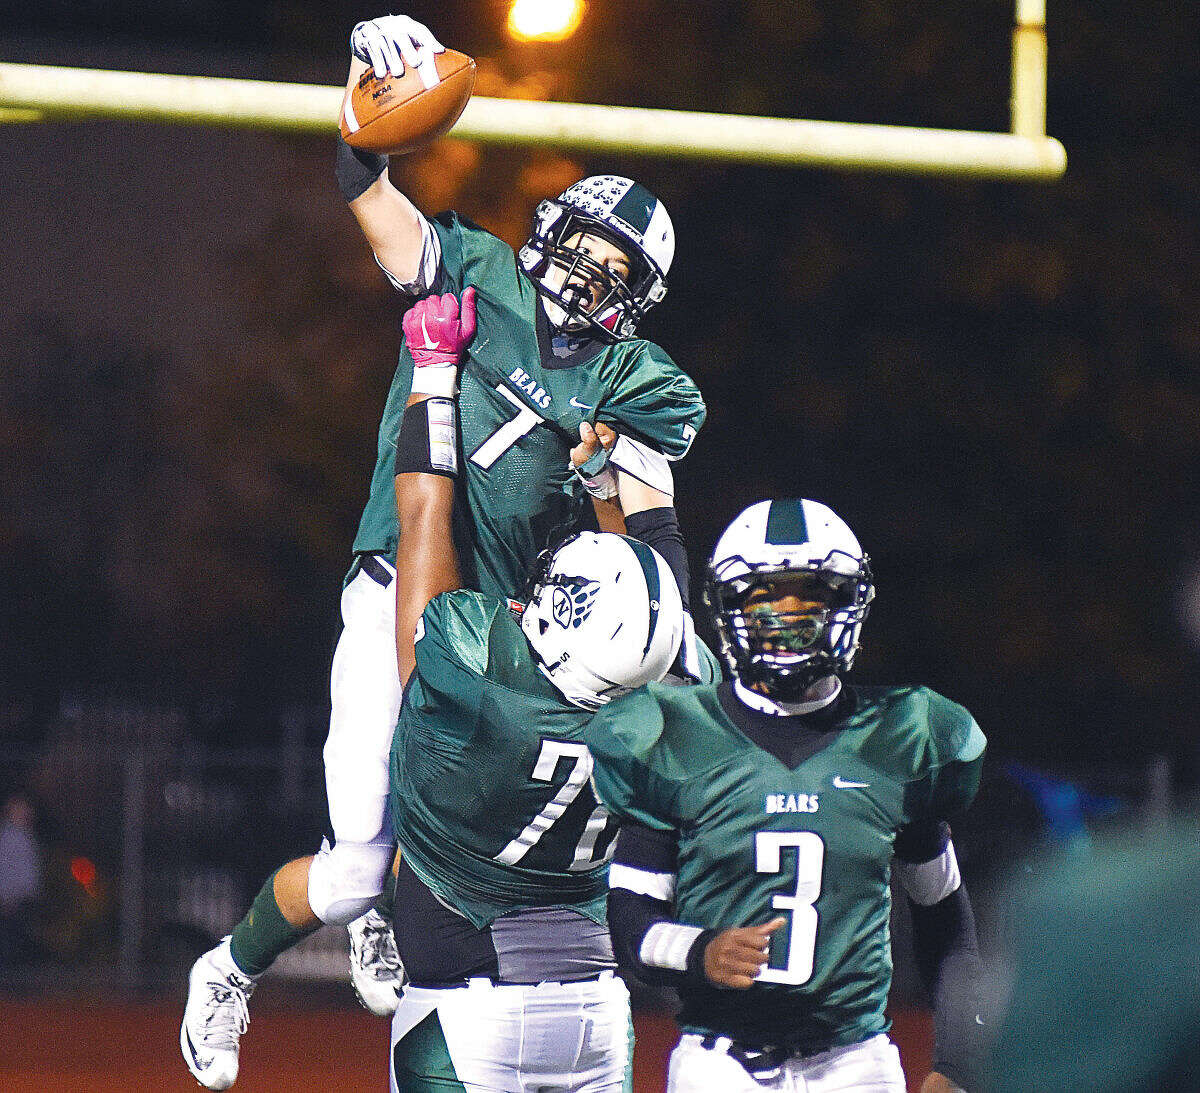 Hour photo/John Nash - Norwalk's Brendan Brown (7) gets hoisted into the air by teammate Luis Maturana as the Bears' Lester Harris jogs off the field during Friday night's 49-7 win over Bridgeport Central.